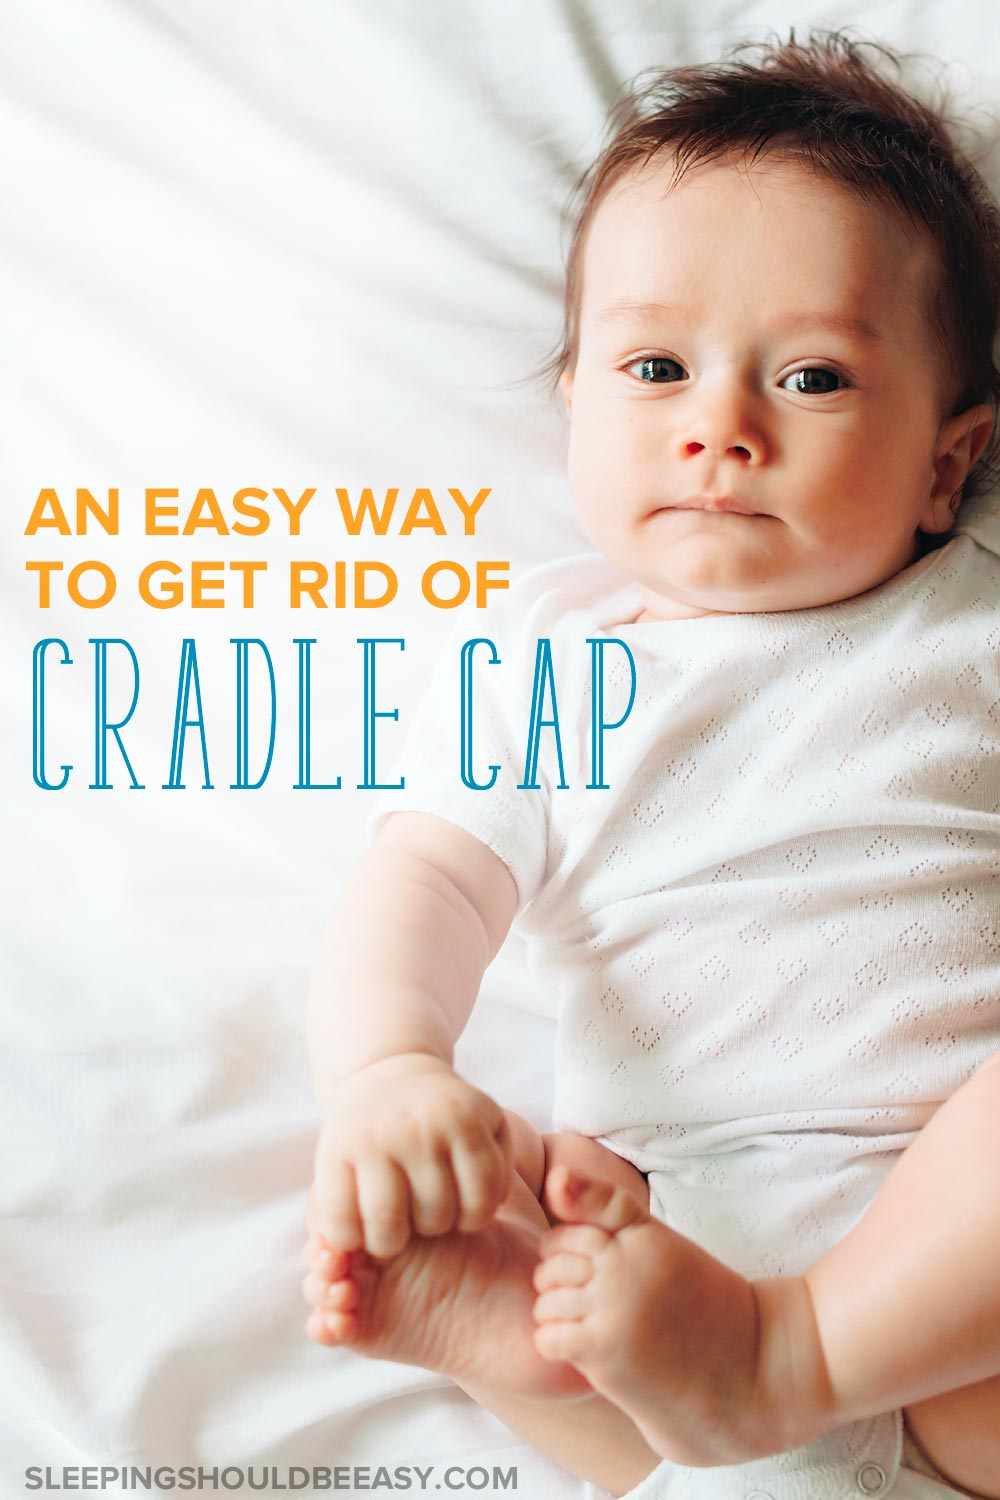 Does your baby have scaly, dried patches on the scalp? Learn an easy technique to get rid of cradle cap from his head using at-home, easy treatments in as little as days.